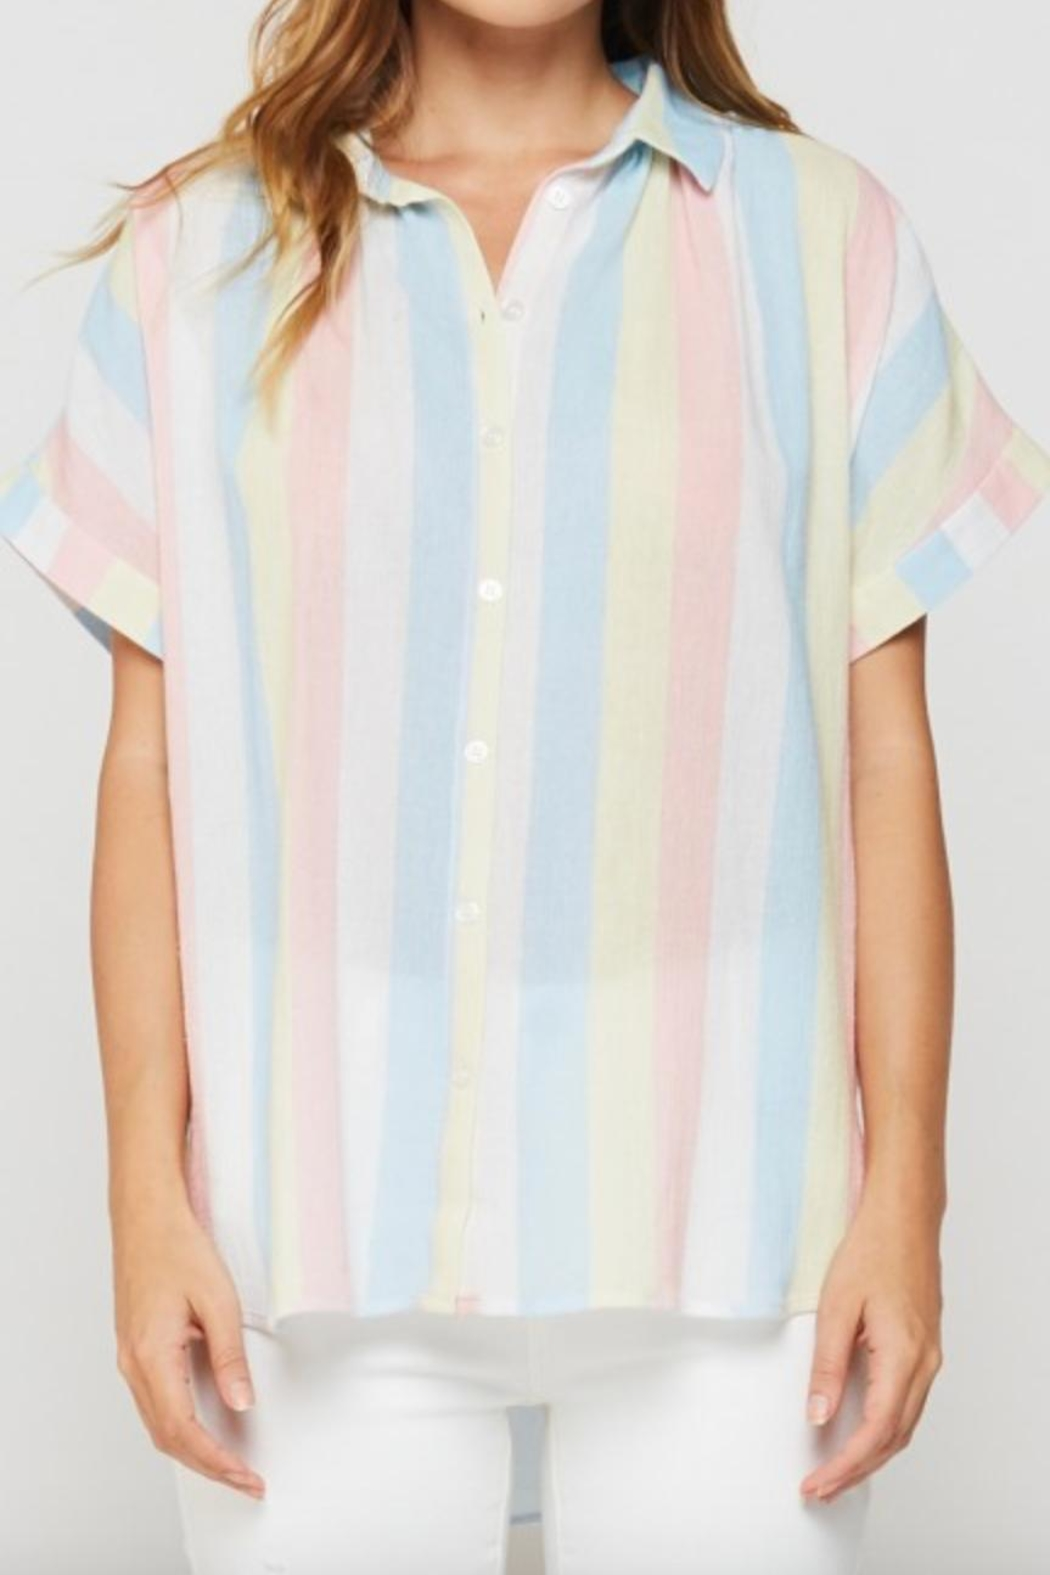 Velvet Heart Deon Pastel Blouse - Front Cropped Image